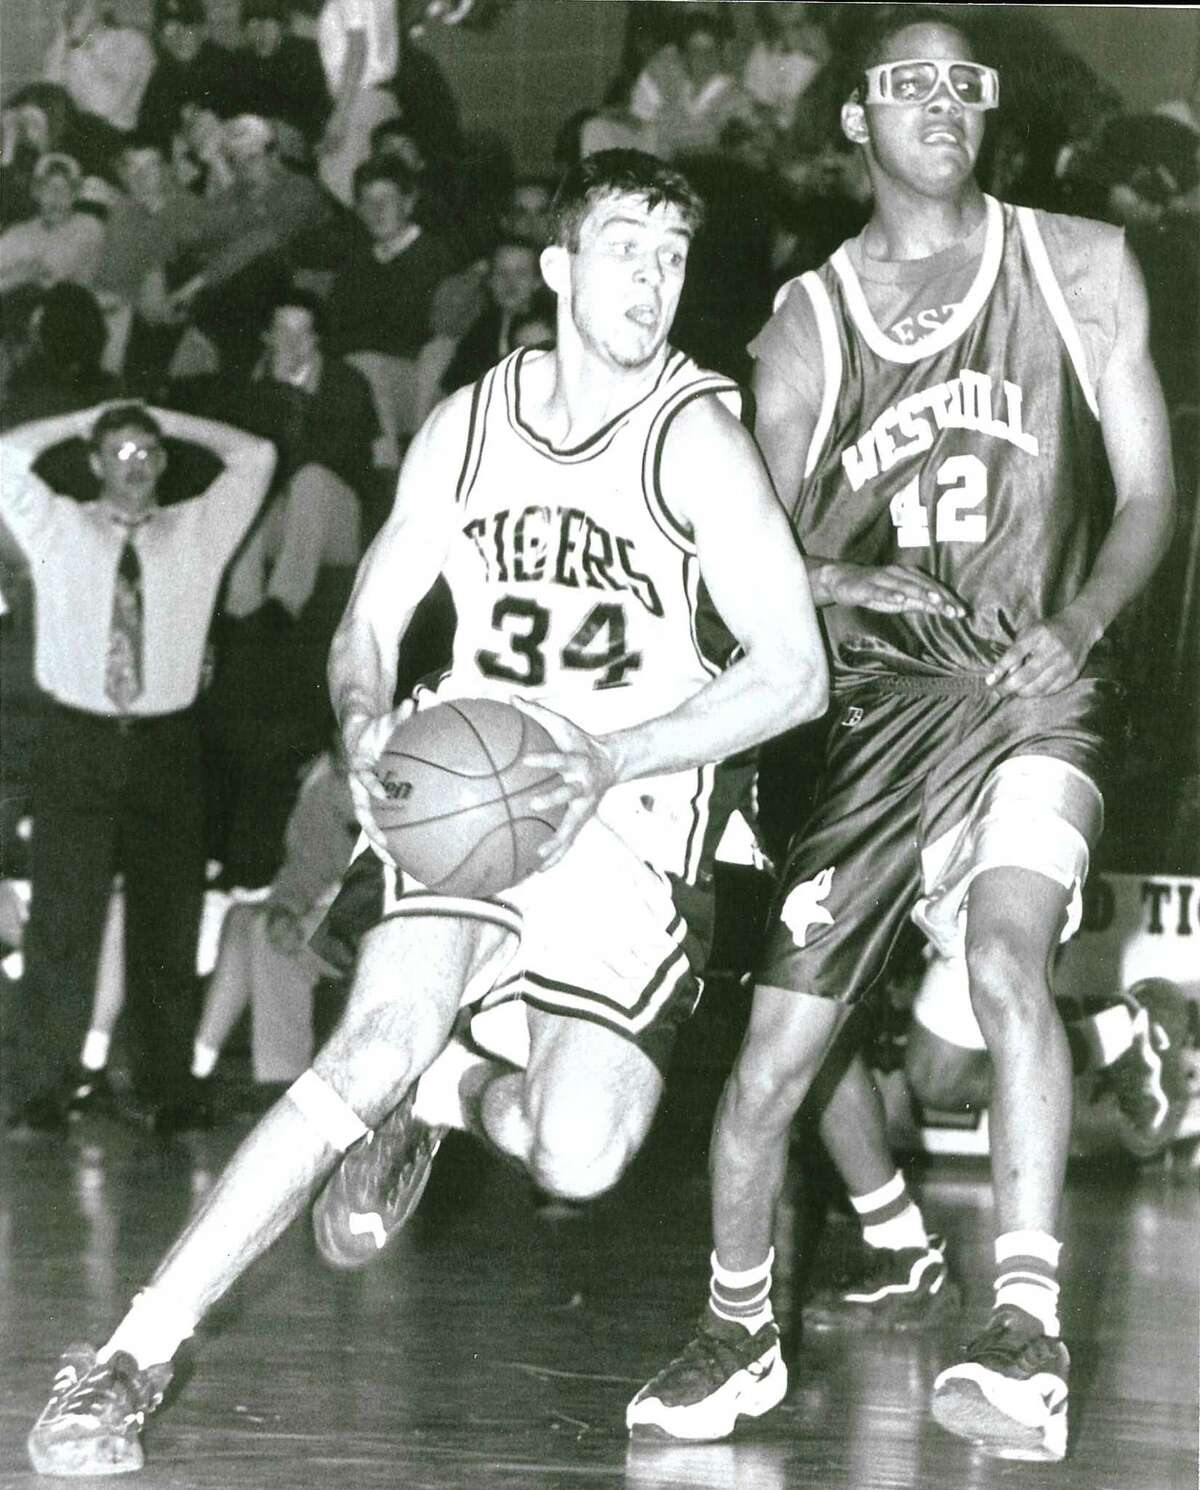 Ridgefield High School graduate Tyler Ugolyn wore the no. 34 when he played for the Tigers. The number is synonous with greatness among players in the program as generations of student athletes have modeled themselves in Ugolyn's image. Ugolyn was killed in the Sept. 11 terrorist attacks.